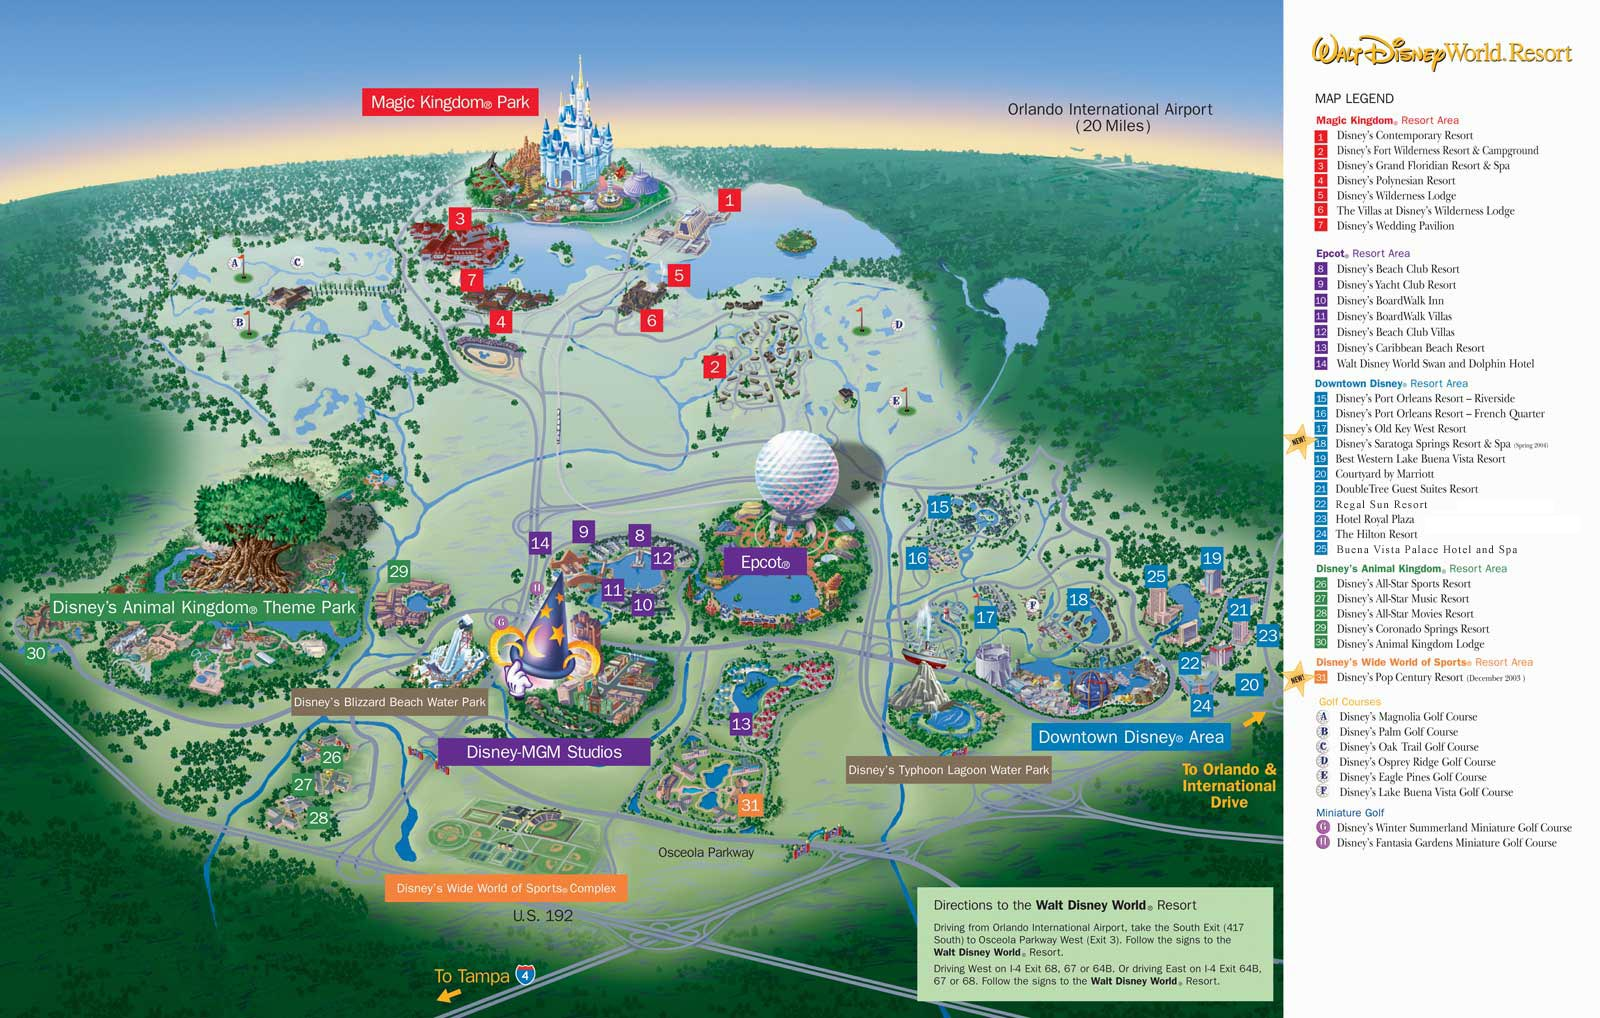 Everything you need to know about Disney World and hurricanes